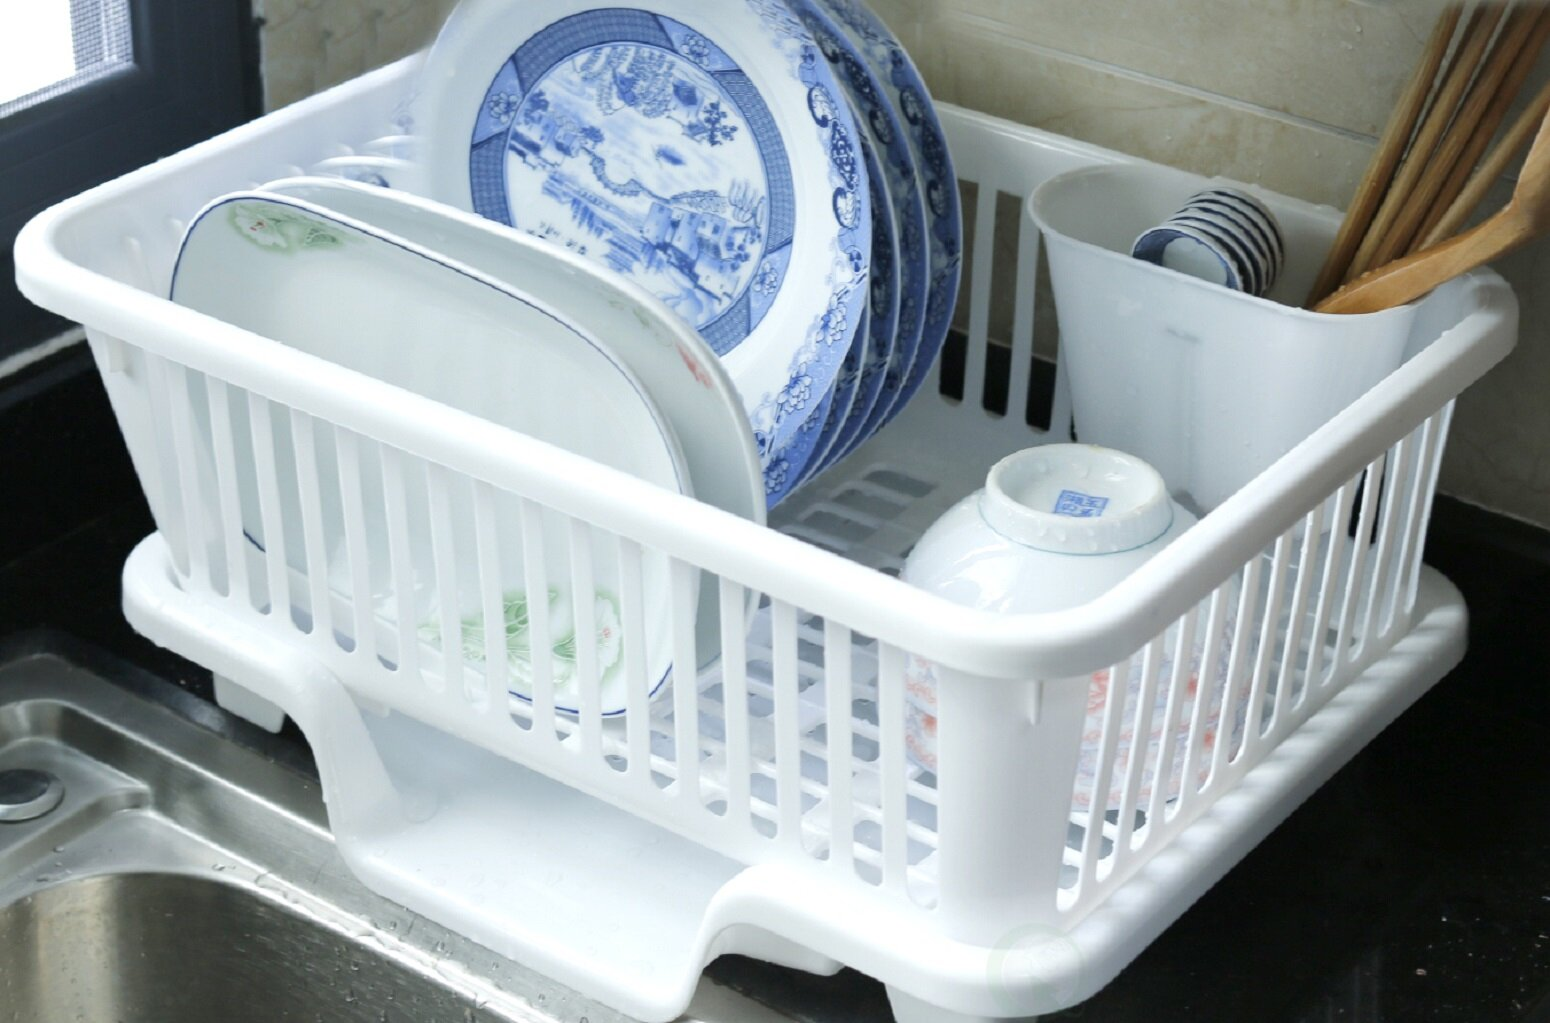 Basicwise Plastic Dish Rack with Drain Board and Utensil Cup | Wayfair